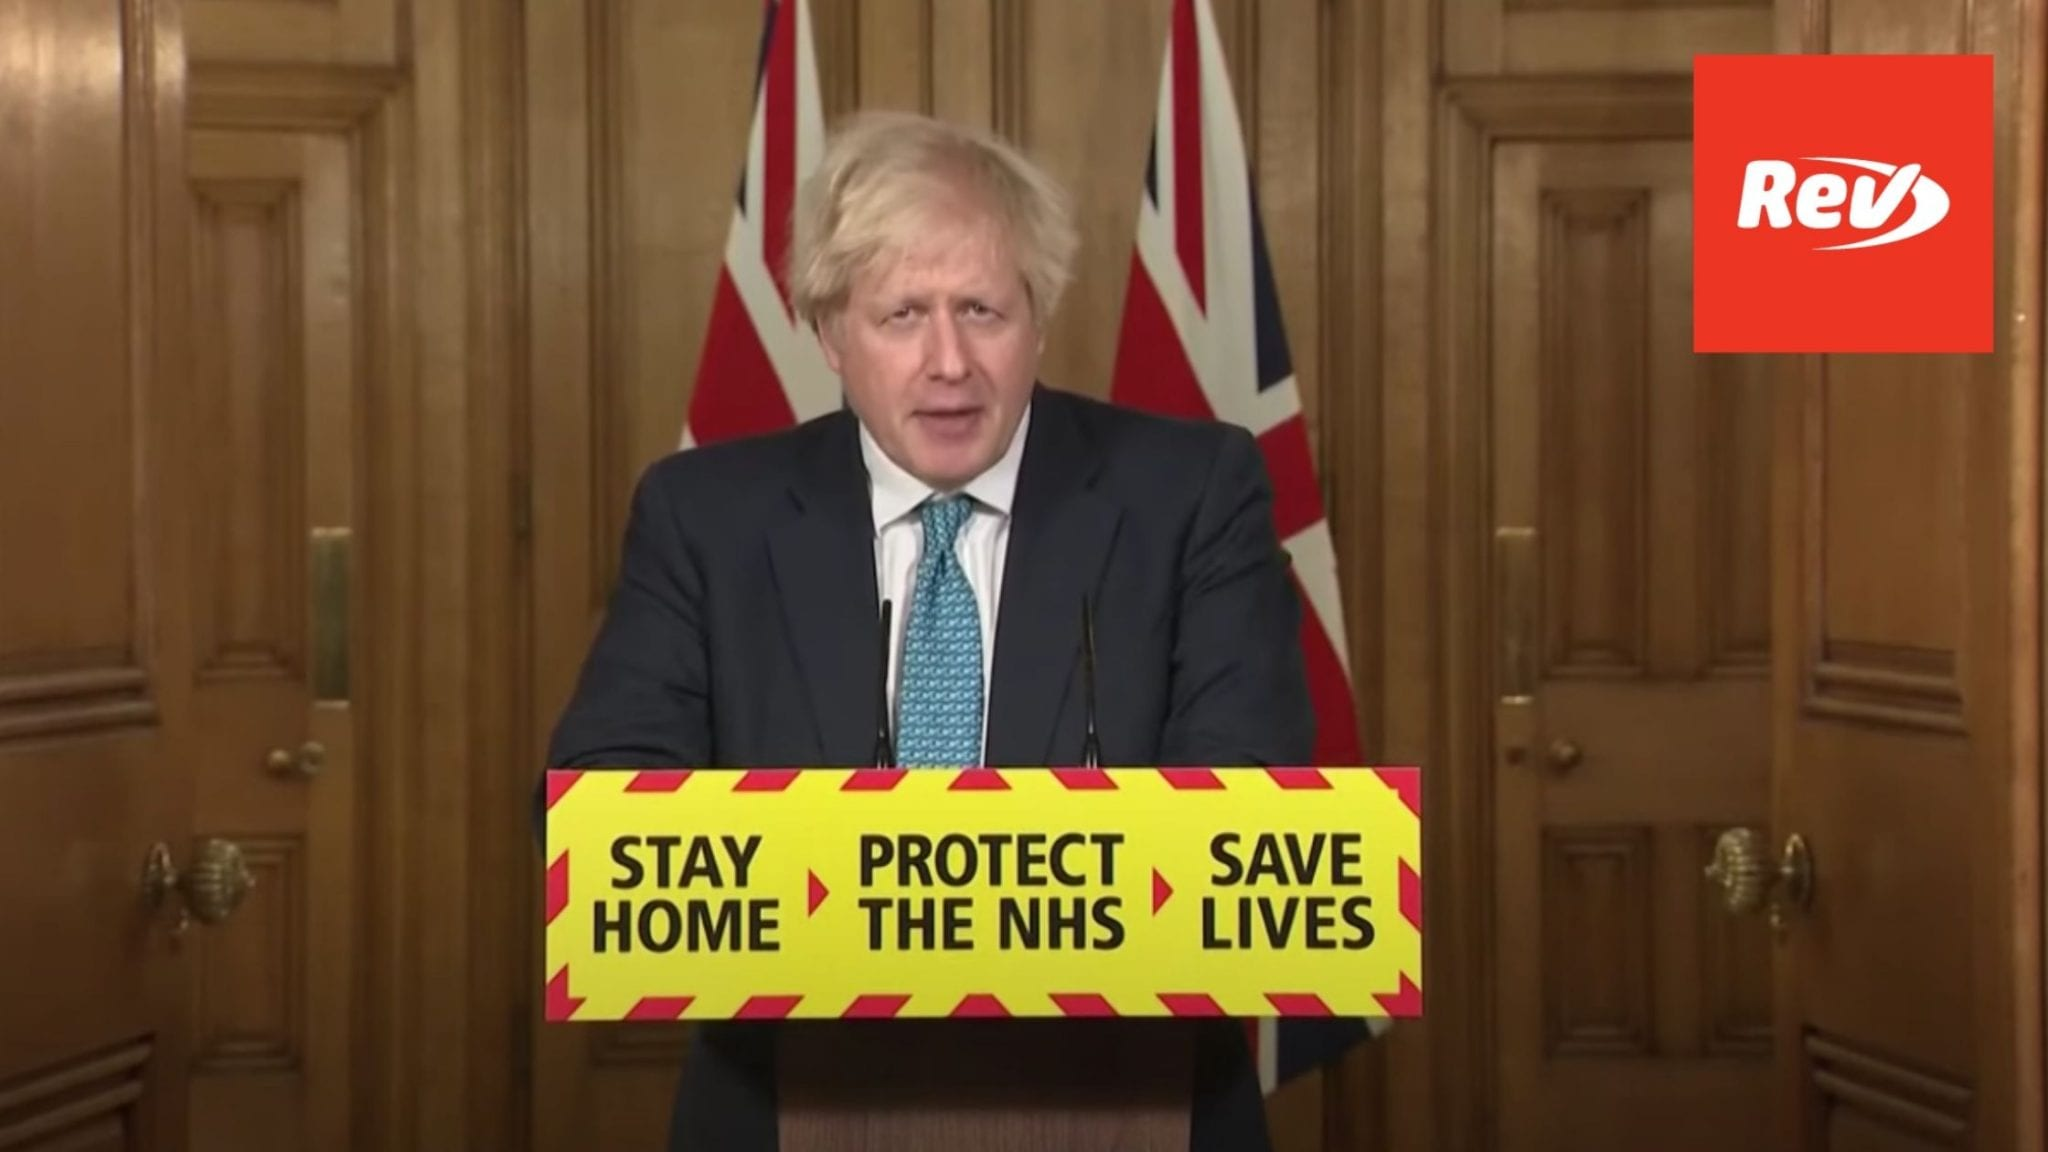 Boris Johnson COVID-19 Lockdown Press Conference Transcript January 7